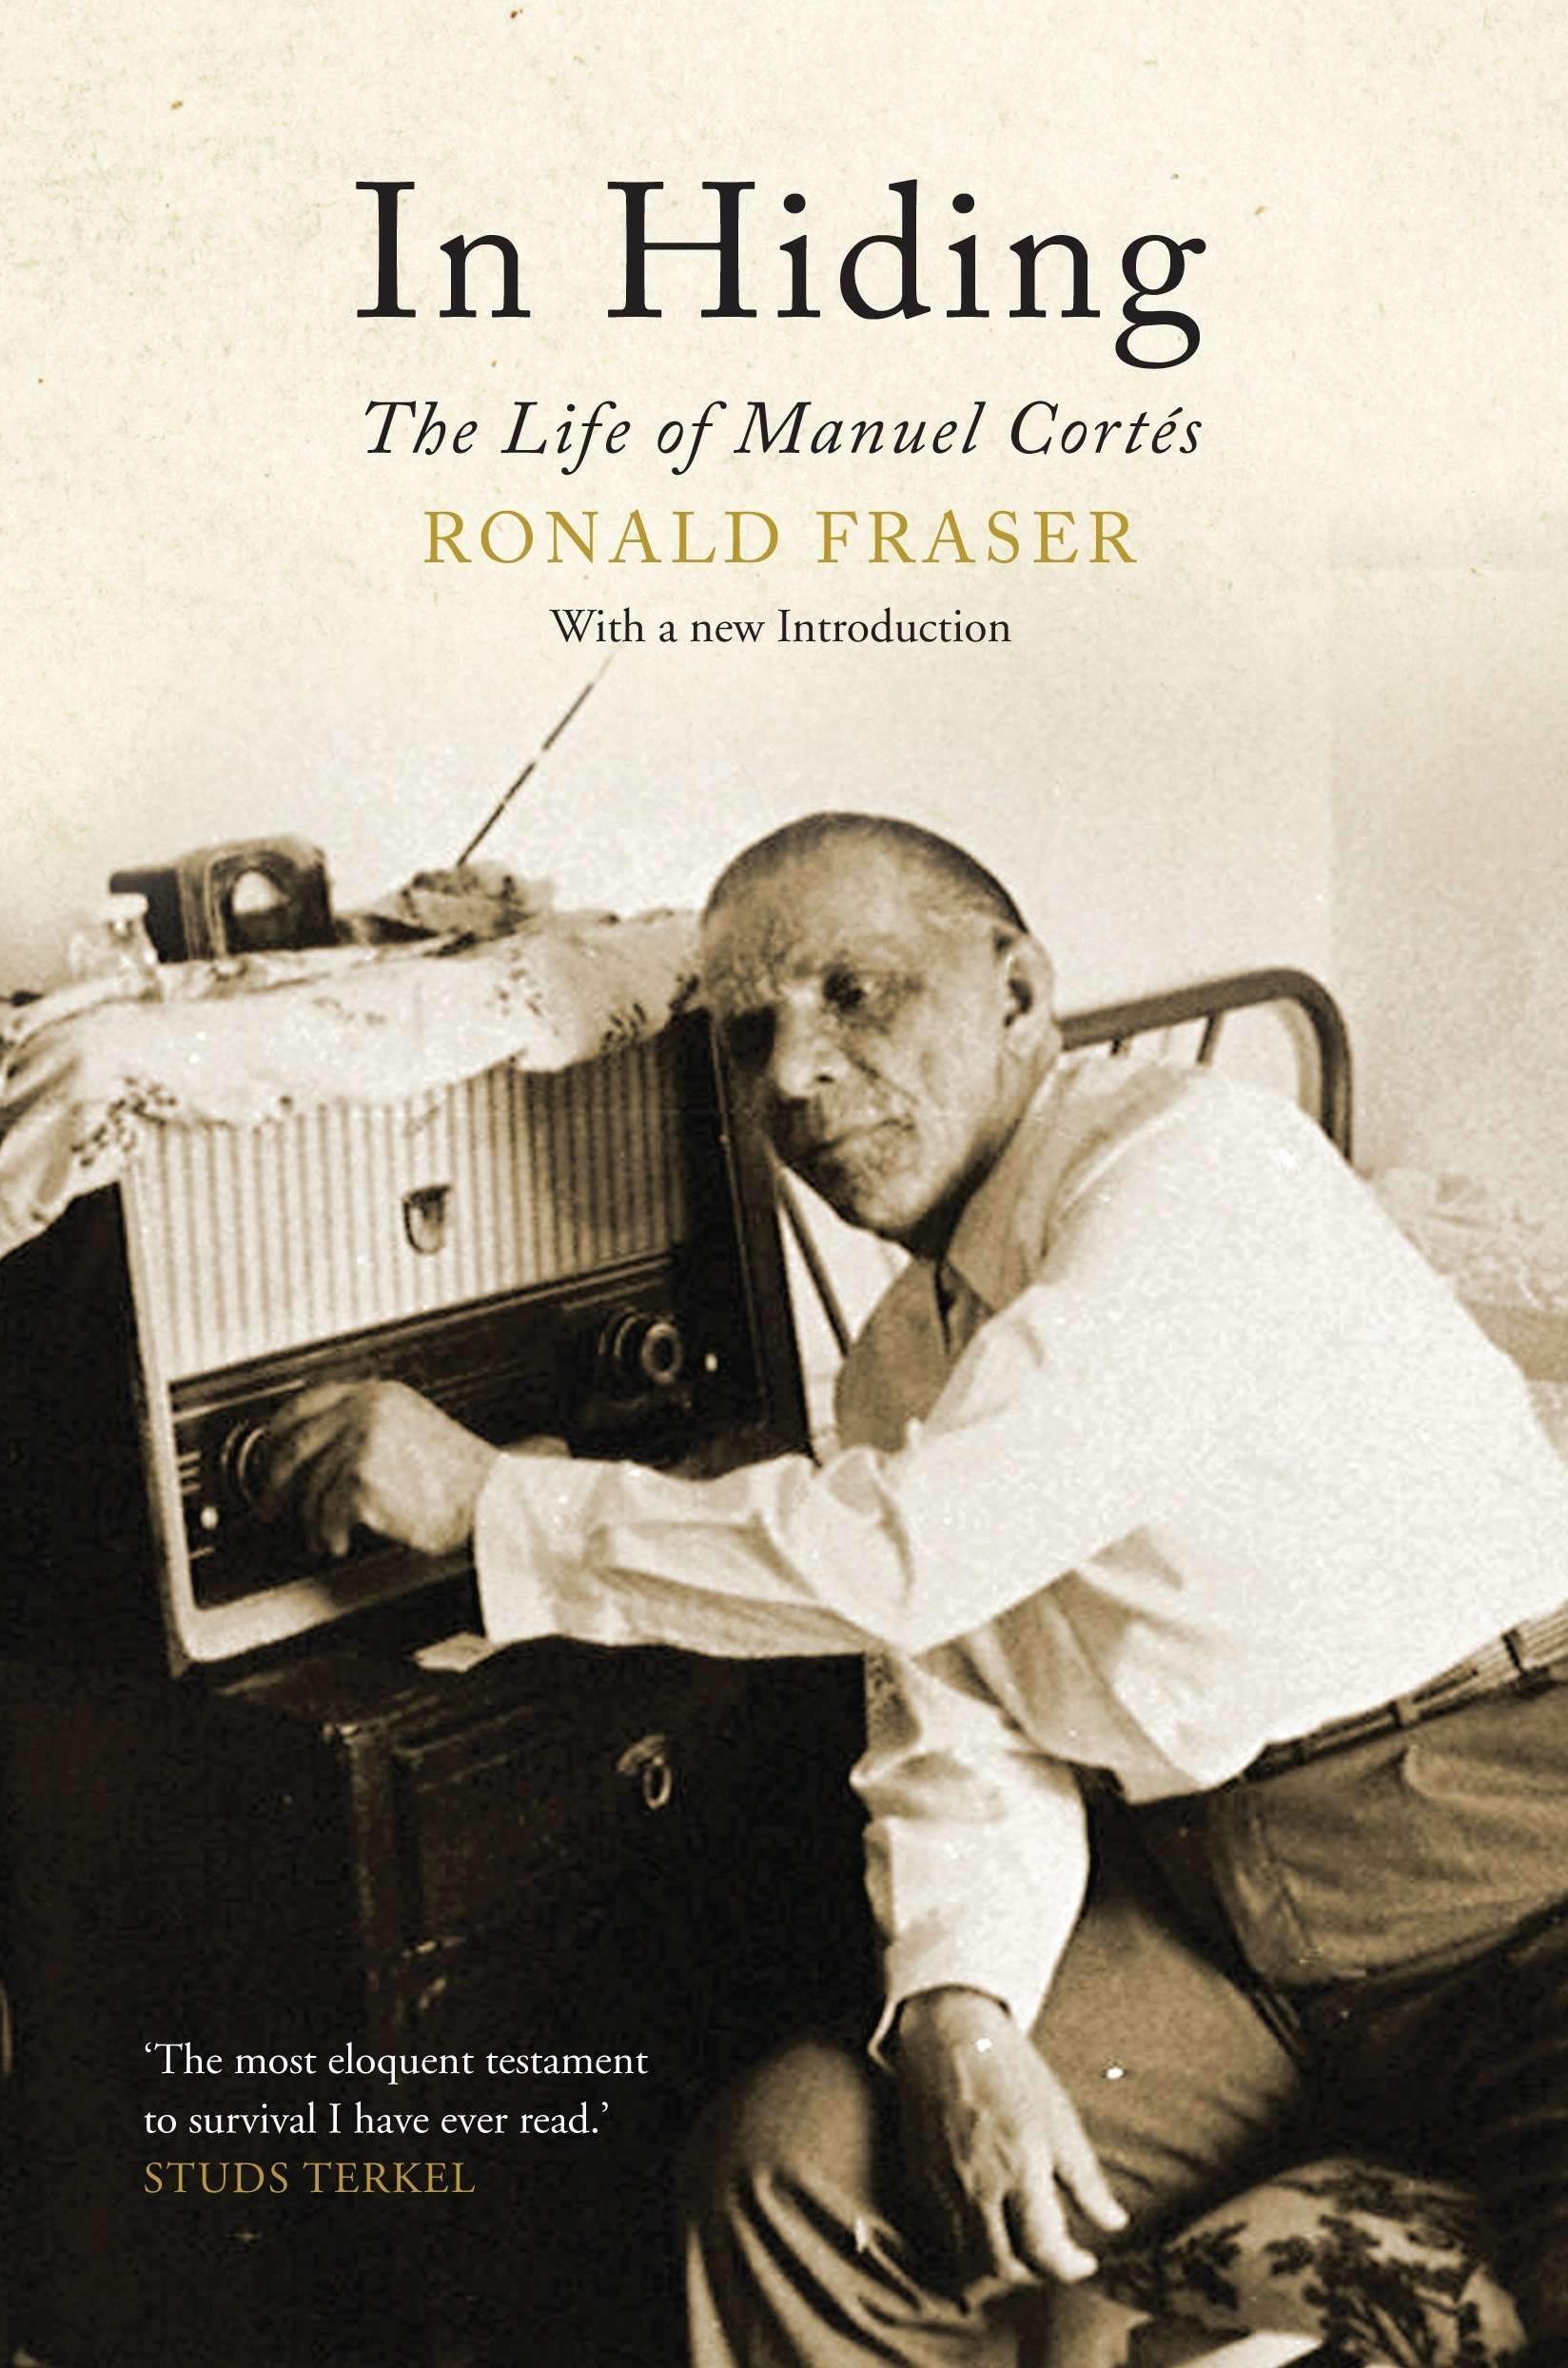 Download In Hiding: The Life of Manuel Cortes pdf